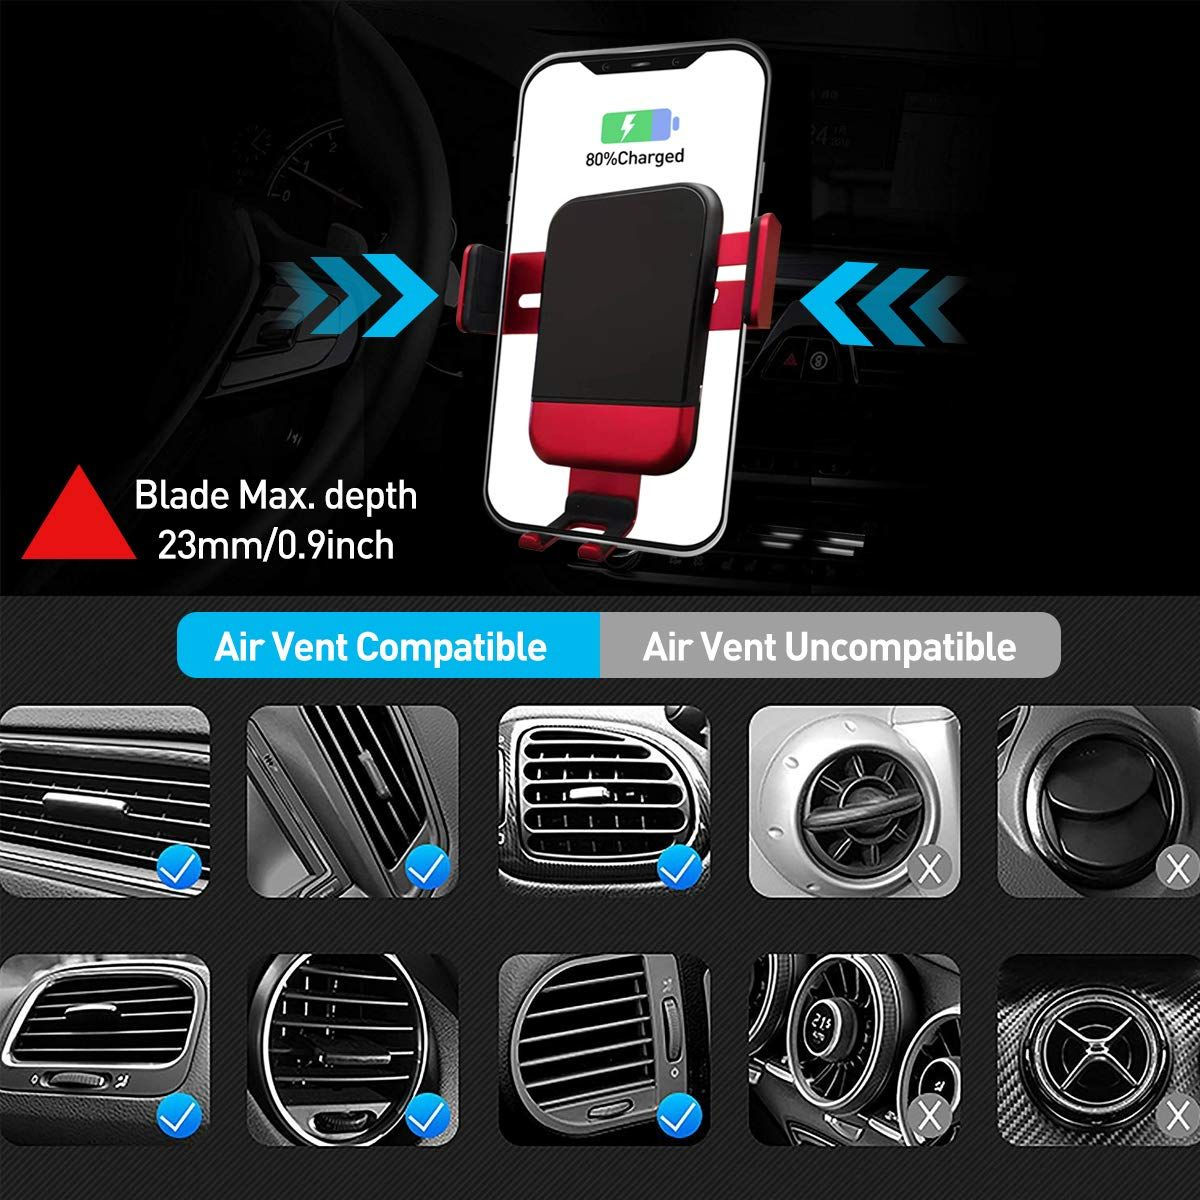 Wireless Car Charger 9 8 Vent Phone Holder Mount for iPhone 11//11 Pro//11 Pro Max//Xs Max//Xr//Xs//X//8//8 Plus//Samsung Galaxy S10 S9 S8 Note 10 Infrared Smart Sensor Auto Clamping Silver